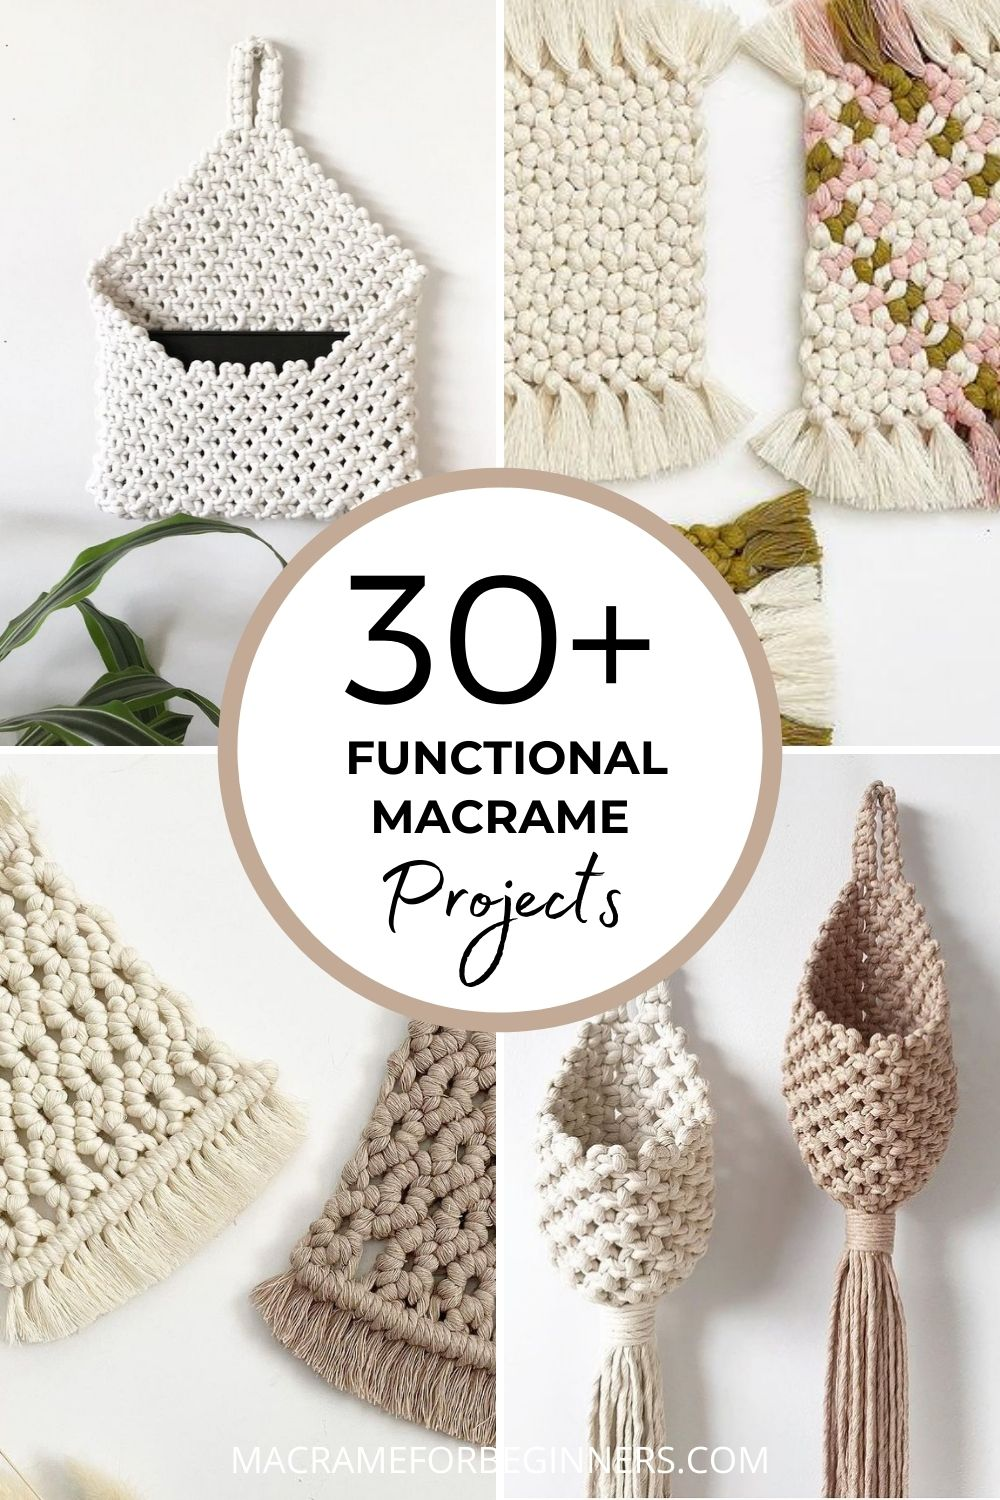 30+ Functional Macrame Projects - How to Style Your Entire Home with Macrame